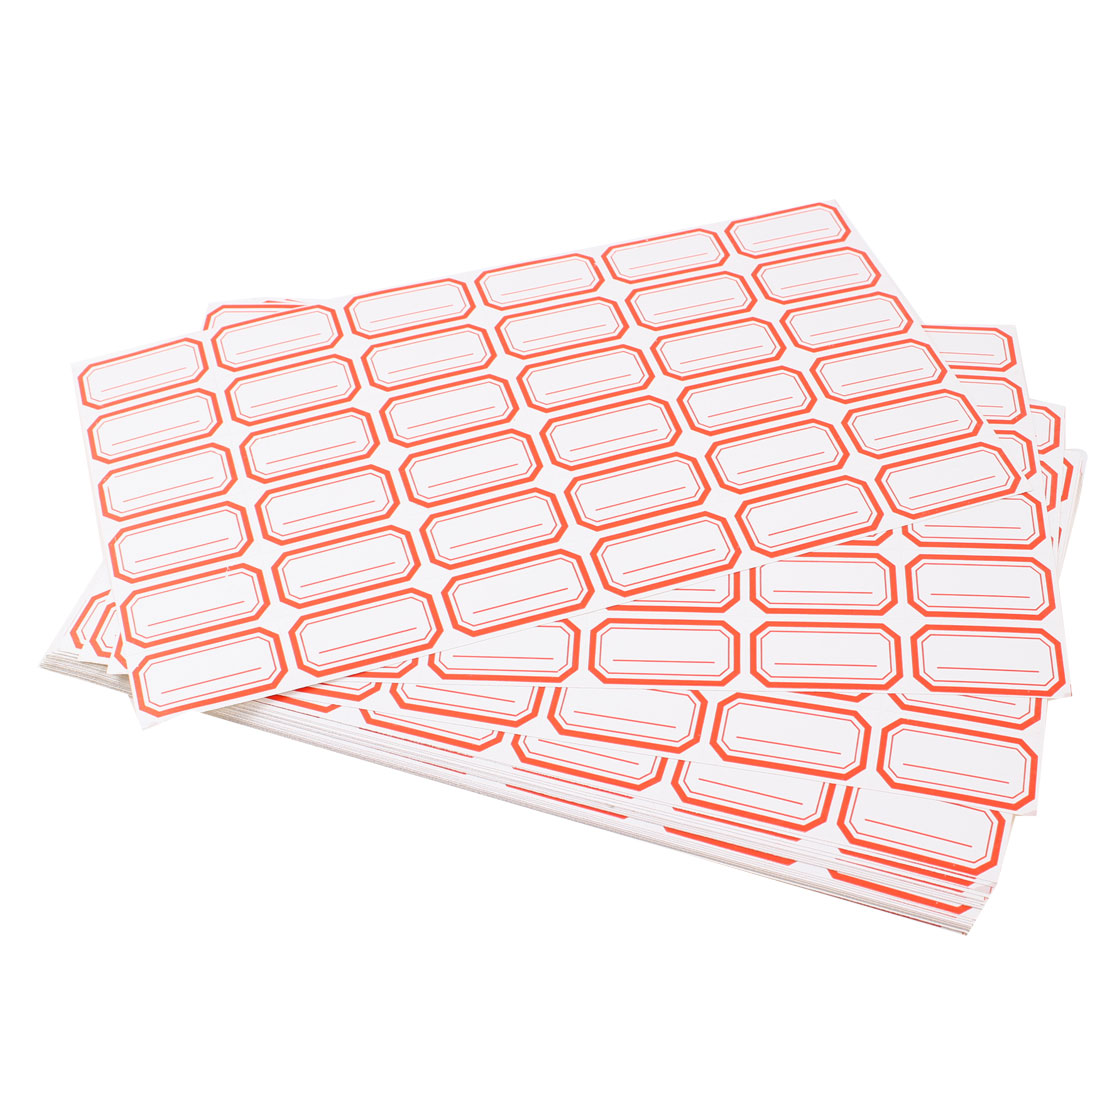 35pcs White Red Self Adhesive Lines Pattern Price Marking Label Paper Tagboard